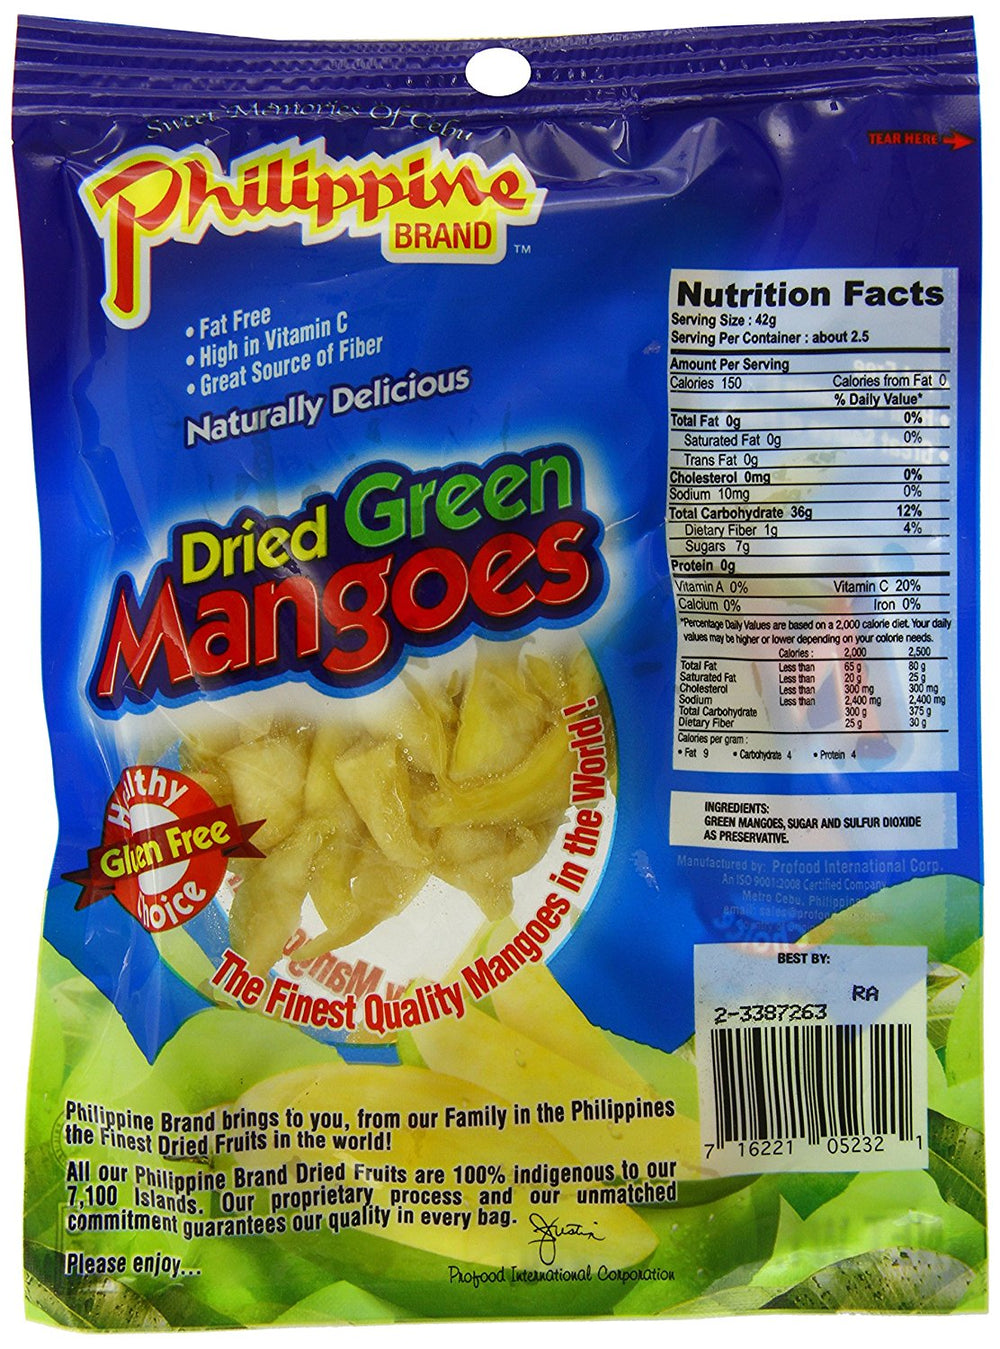 Philippine Brand Dried Green Mangoes, 3.5oz/100g